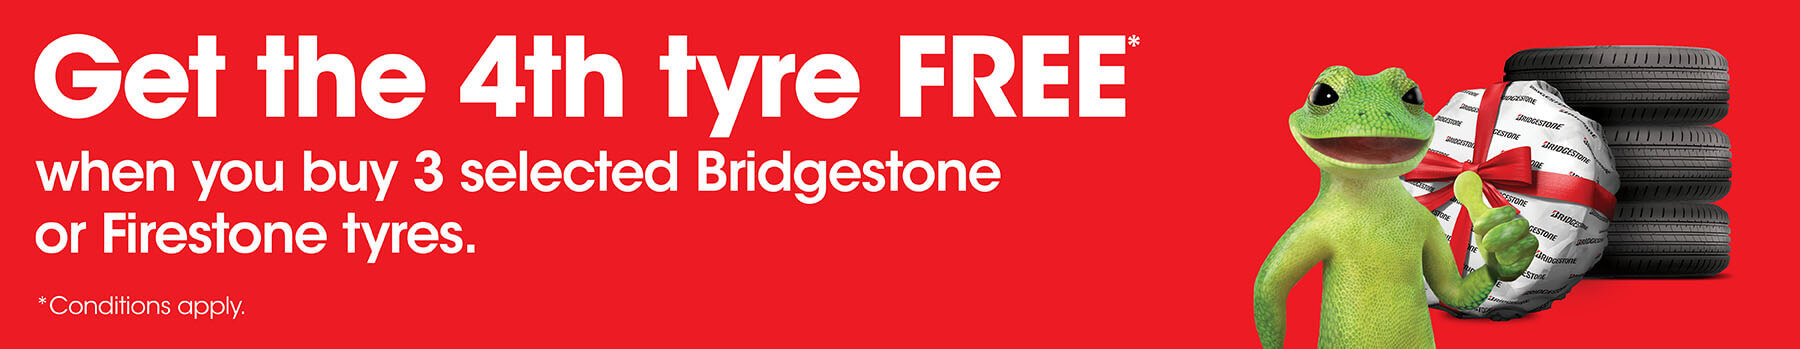 Buy 3 Get 1 Free selected Bridgestone or Firestone tyres